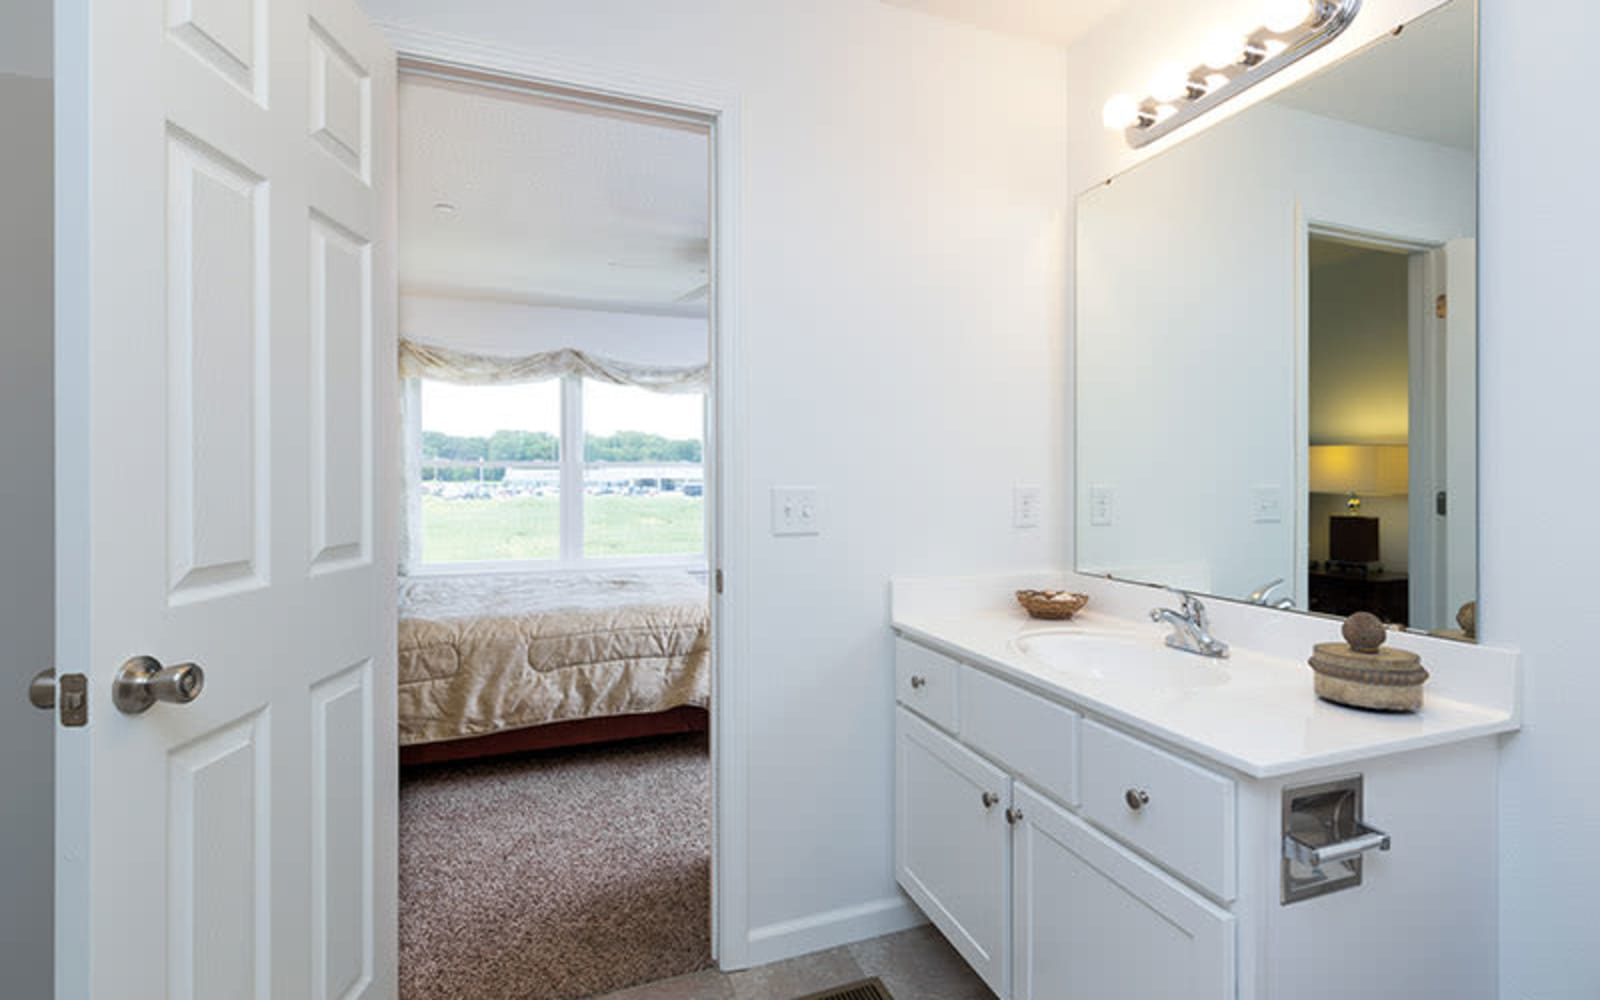 An attached master bathroom at The Landing of Clinton in Clinton, Iowa